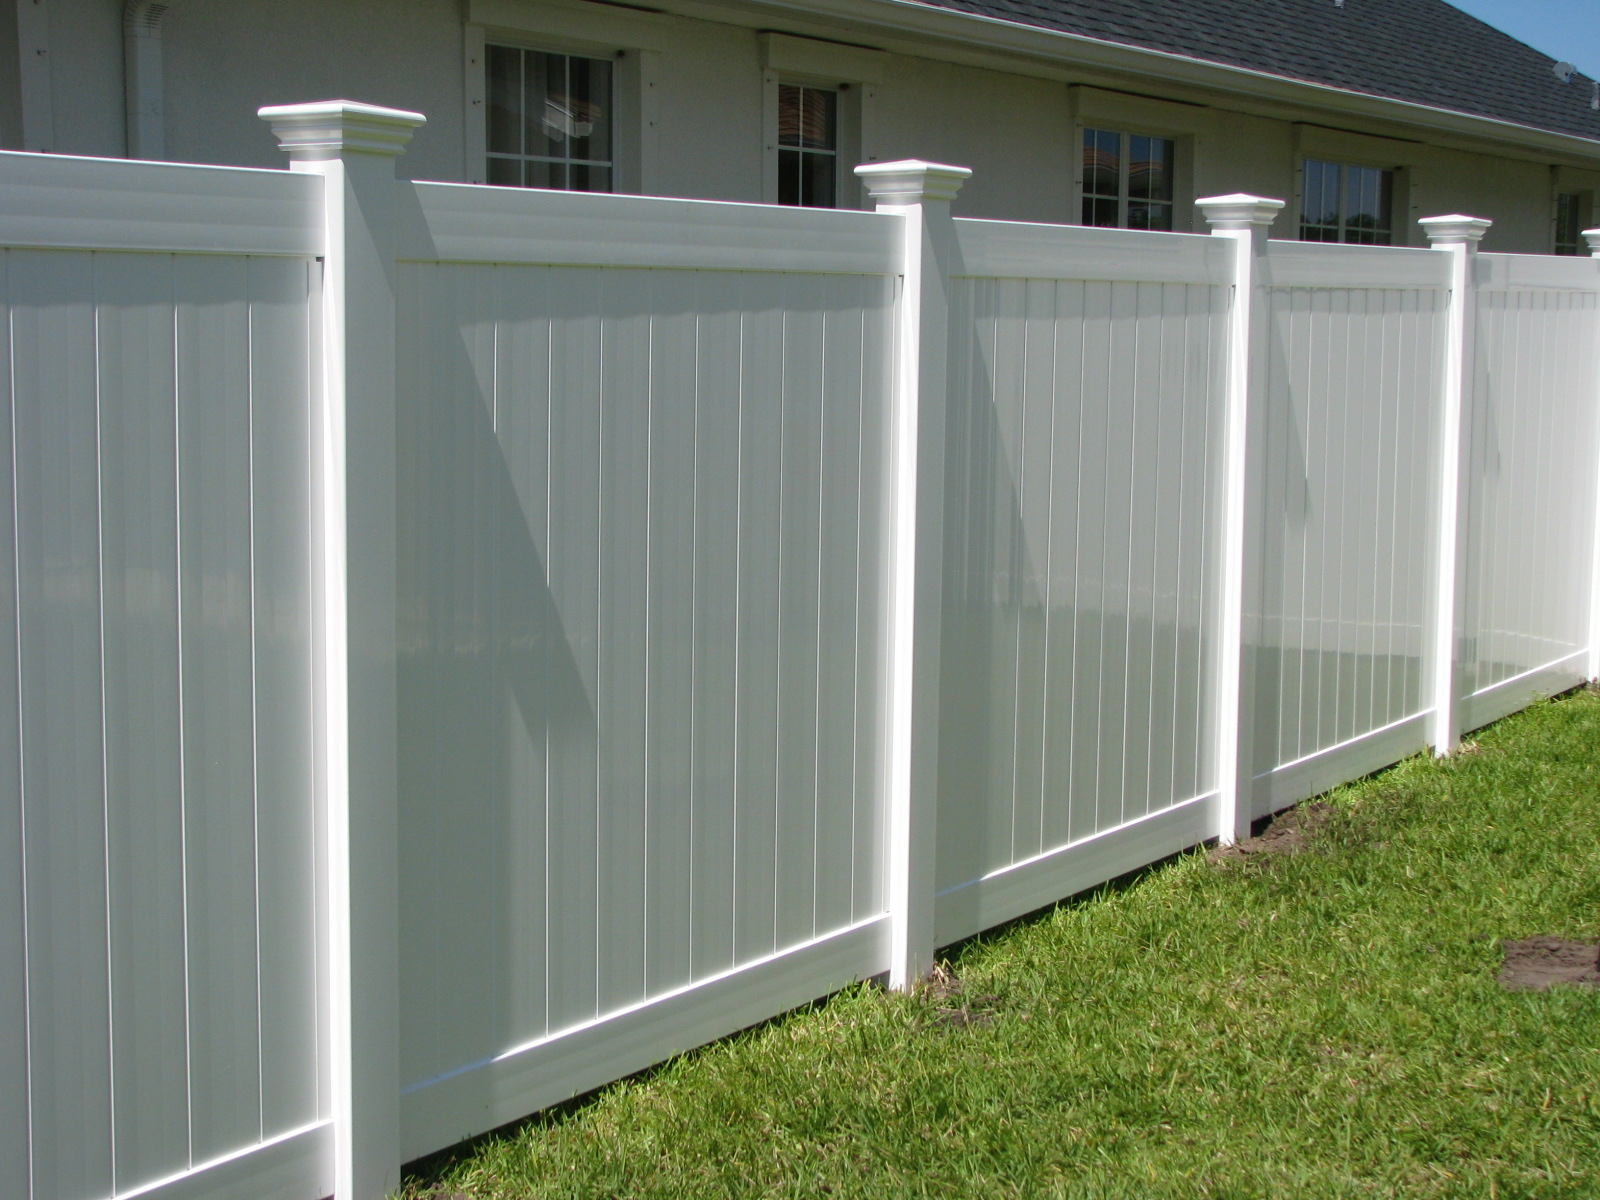 Fence Beautiful 5 Foot Privacy Fence Veranda Windham 6 Ft H 6 Ft for dimensions 1600 X 1200